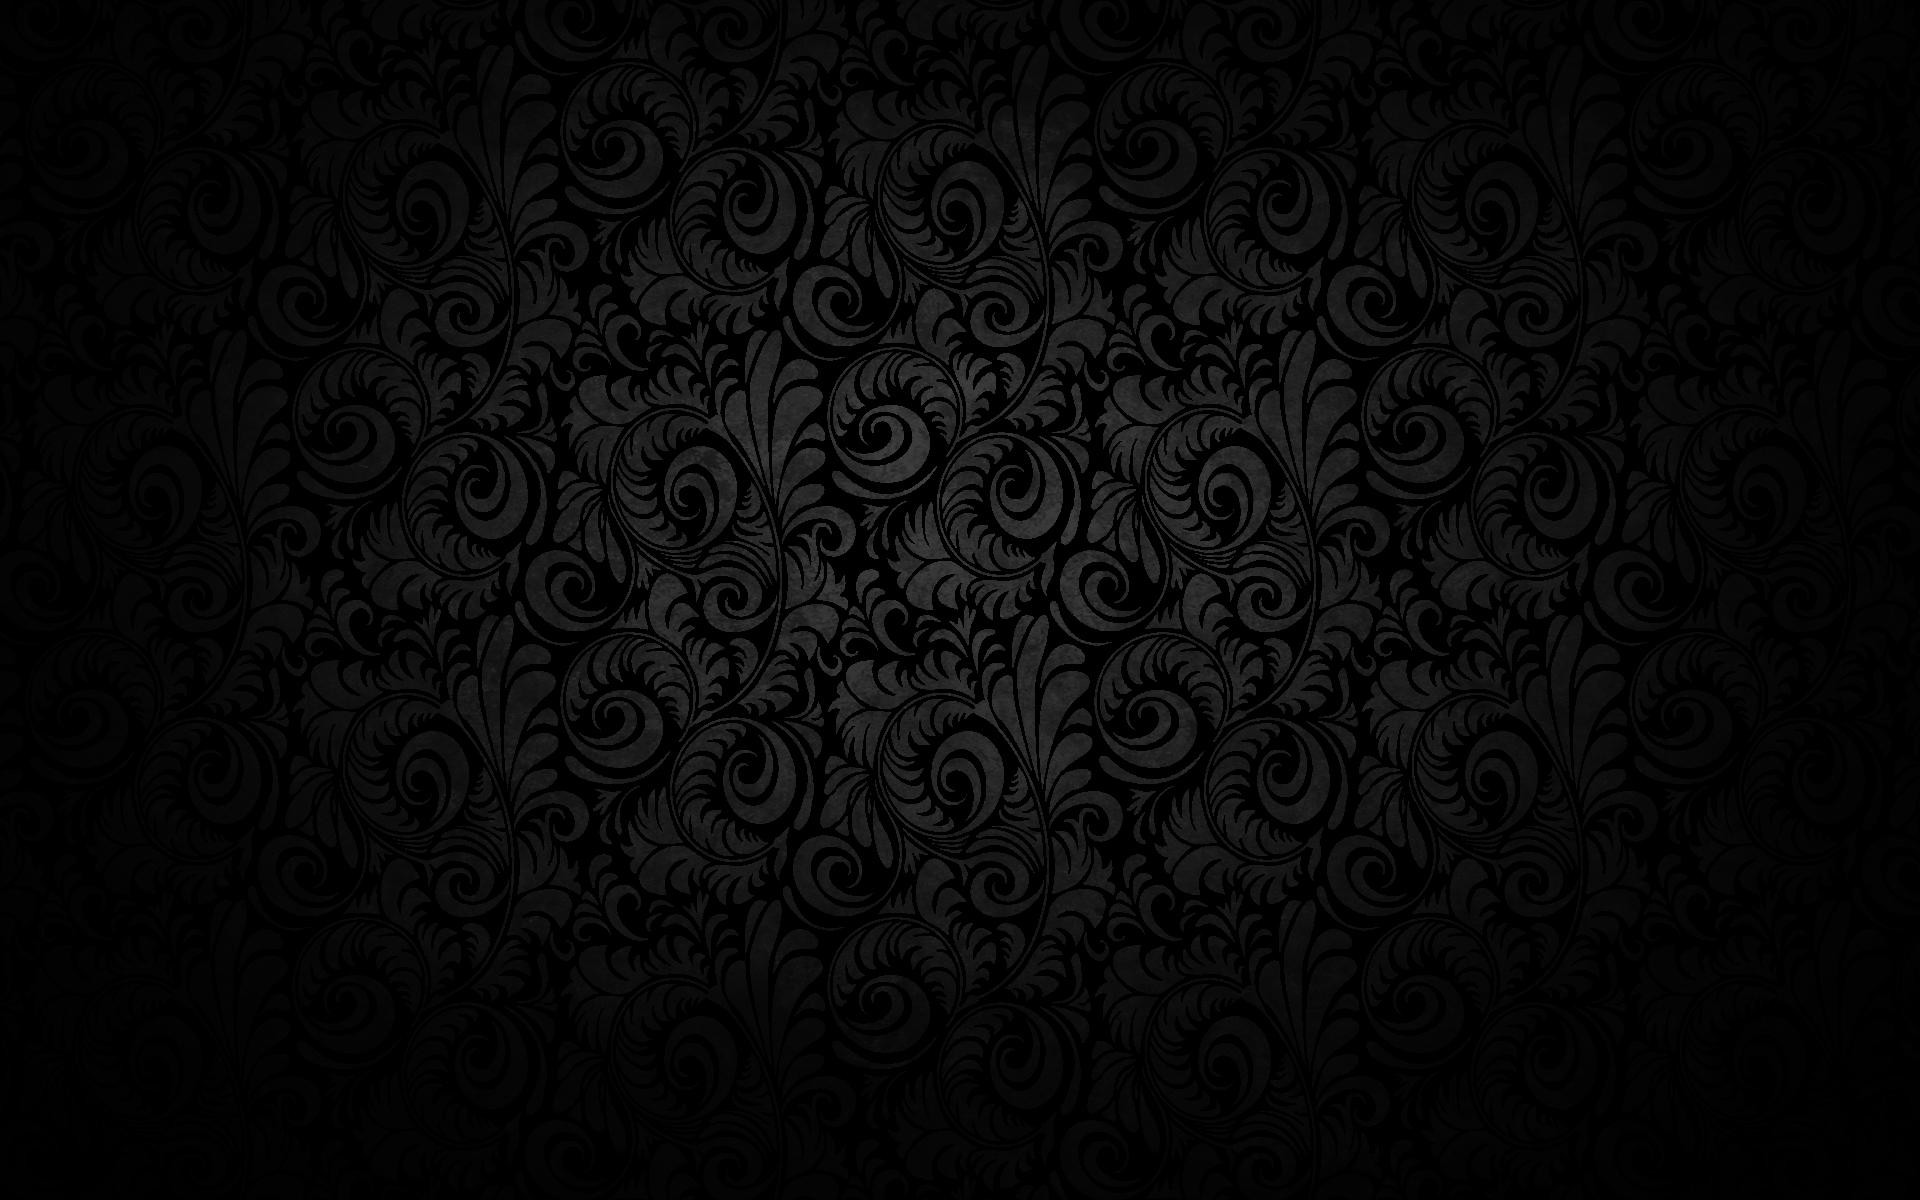 1920x1200 - Cool Gothic Backgrounds 45